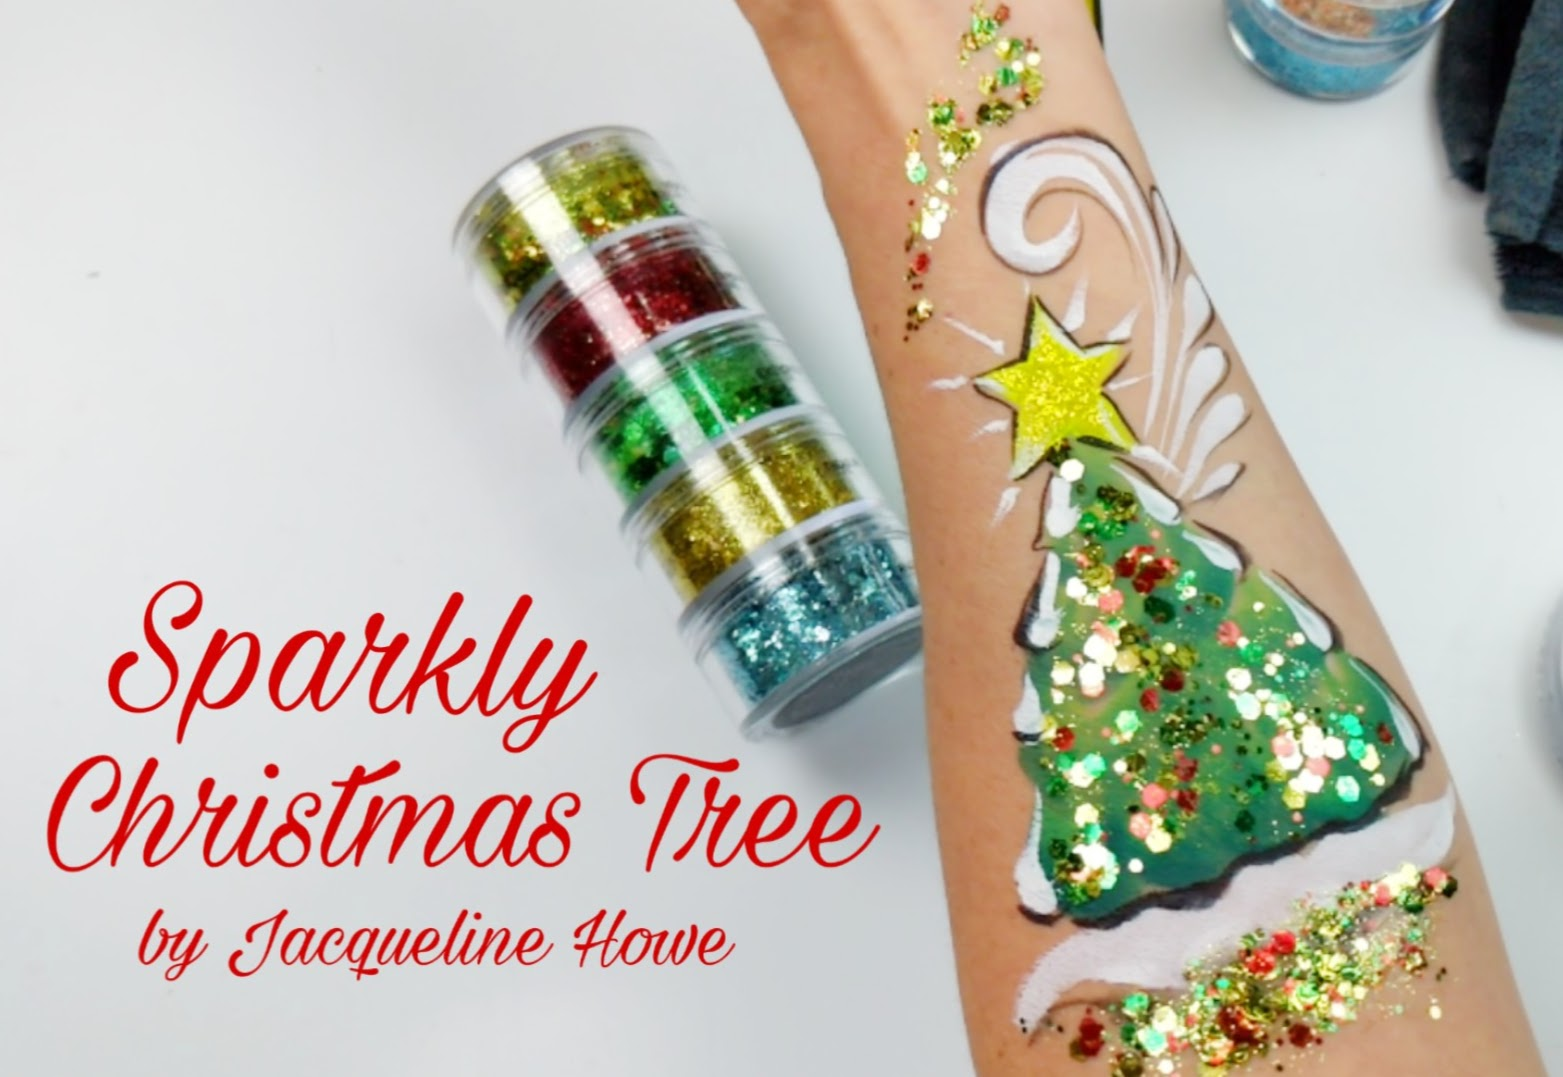 Sparkly Christmas Tree Video using VIVID Glitter